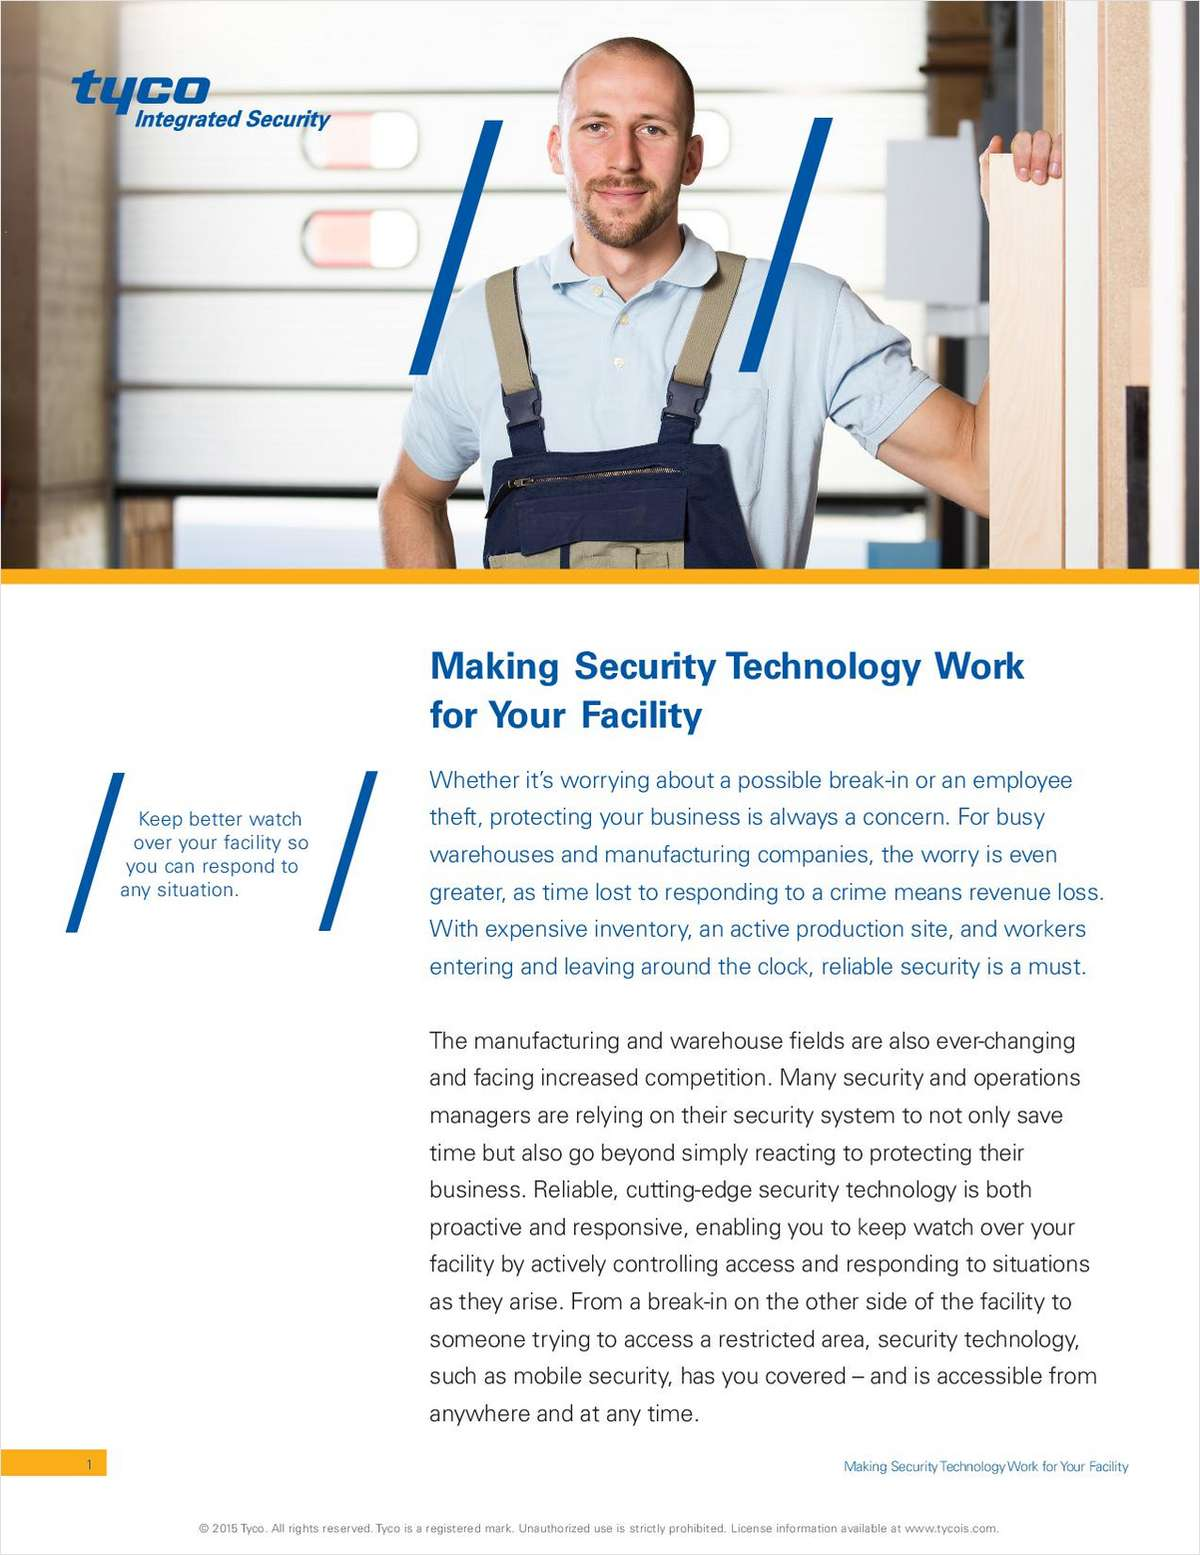 Making Security Technology Work for your Facility